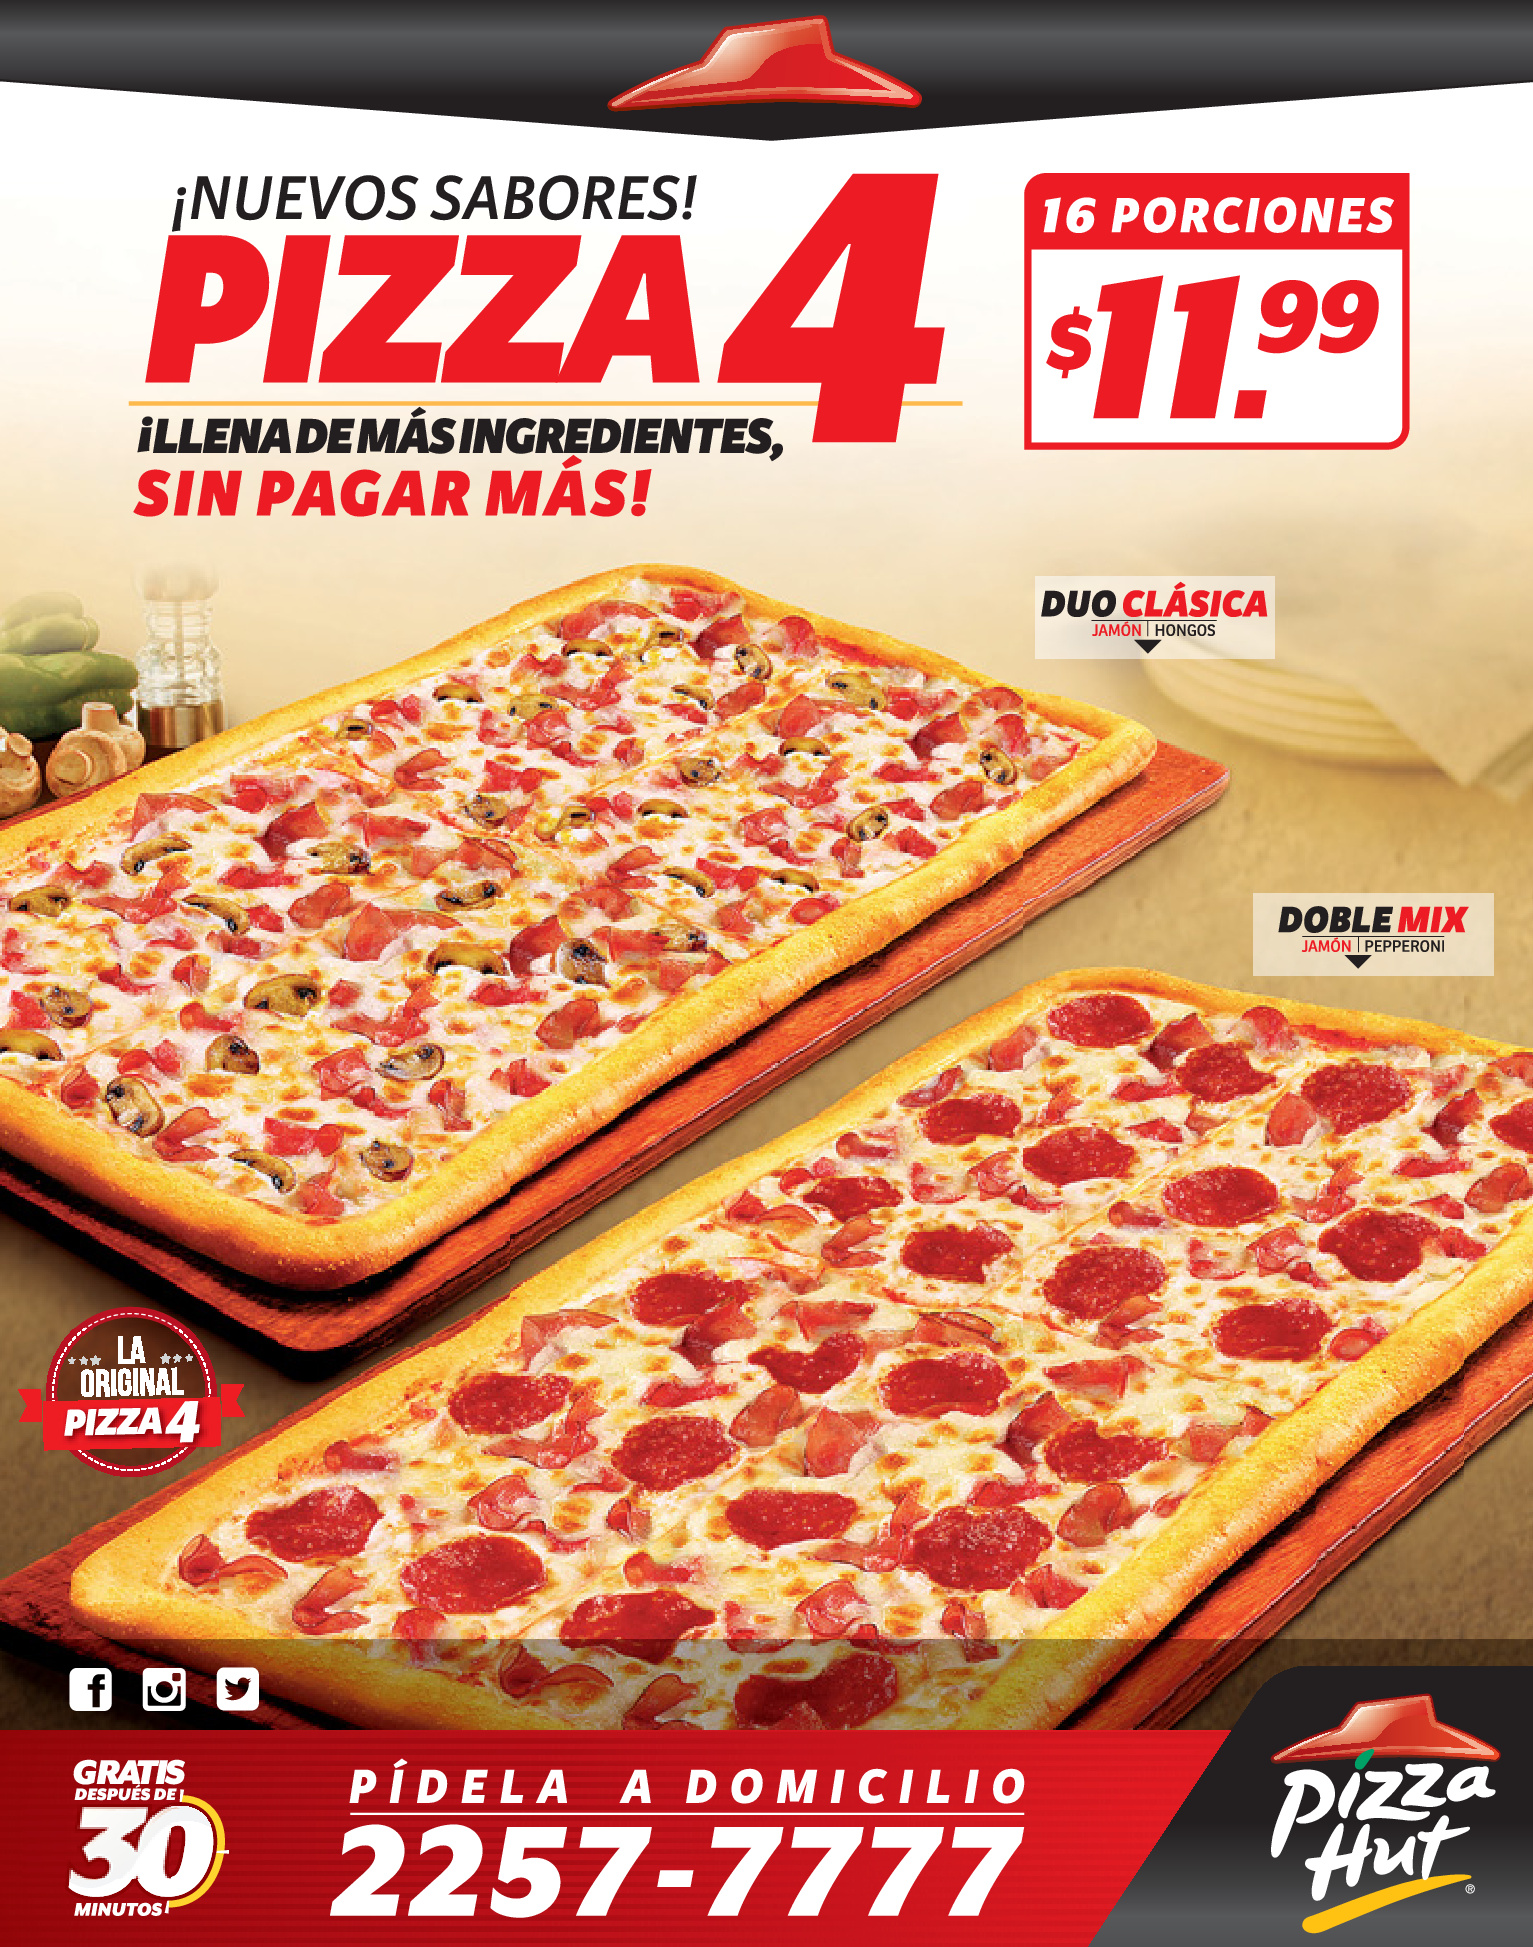 Nuevos sabaores en pizza 4 de pizza hut 14oct13 for Oficinas de pizza hut